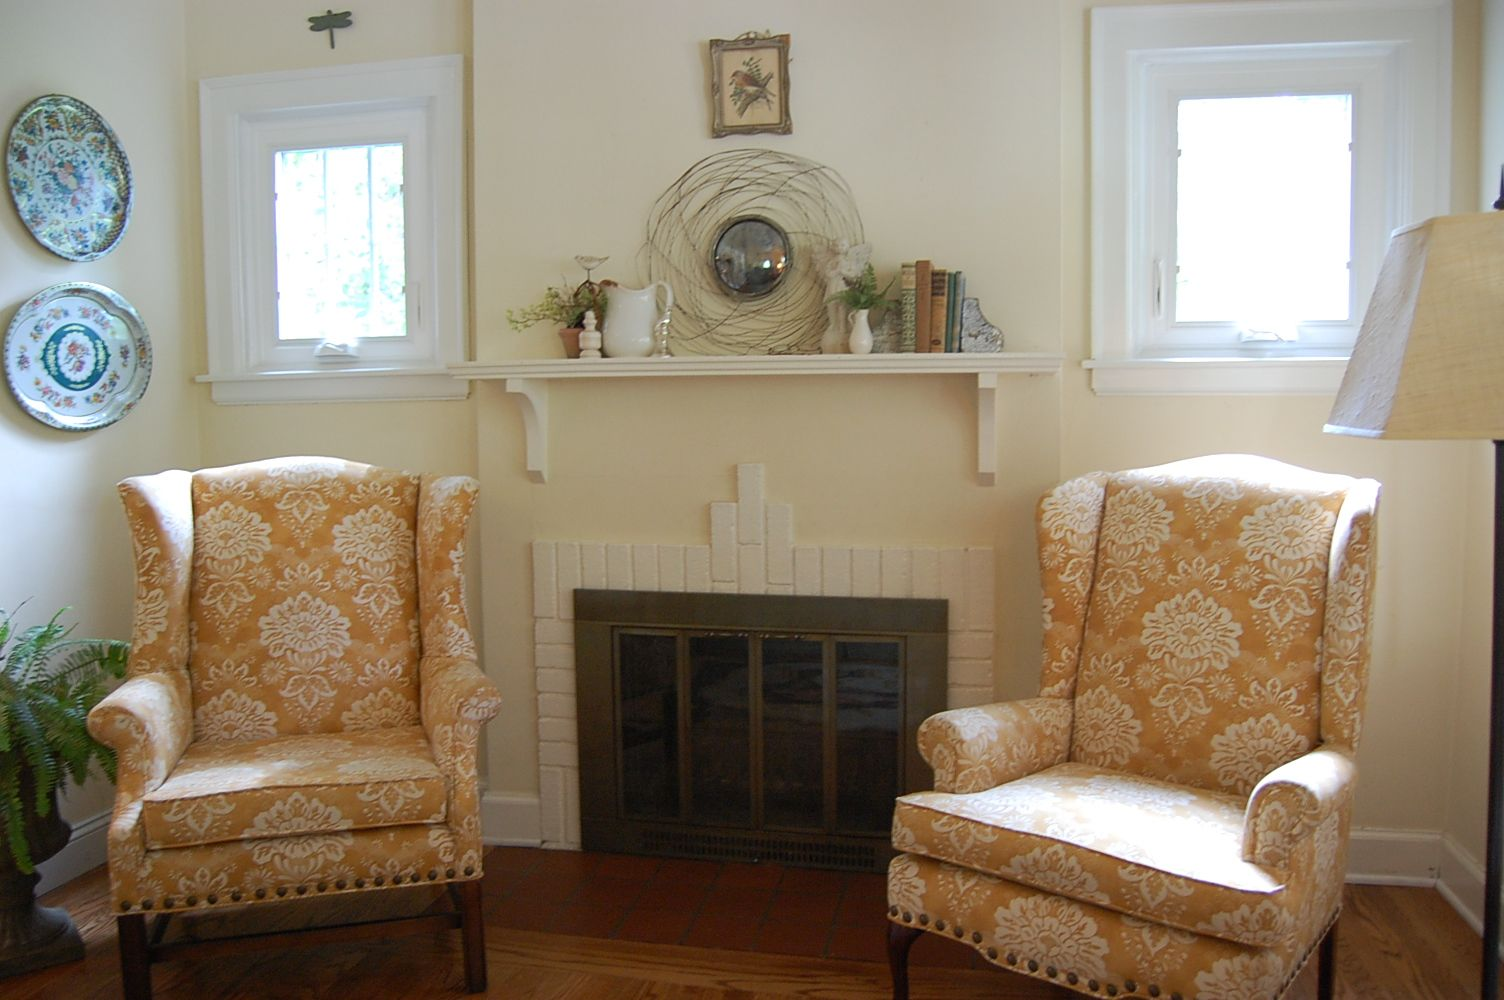 Pair Of Chairs Flanking Fireplace Family Room Remodel Family Room House Design